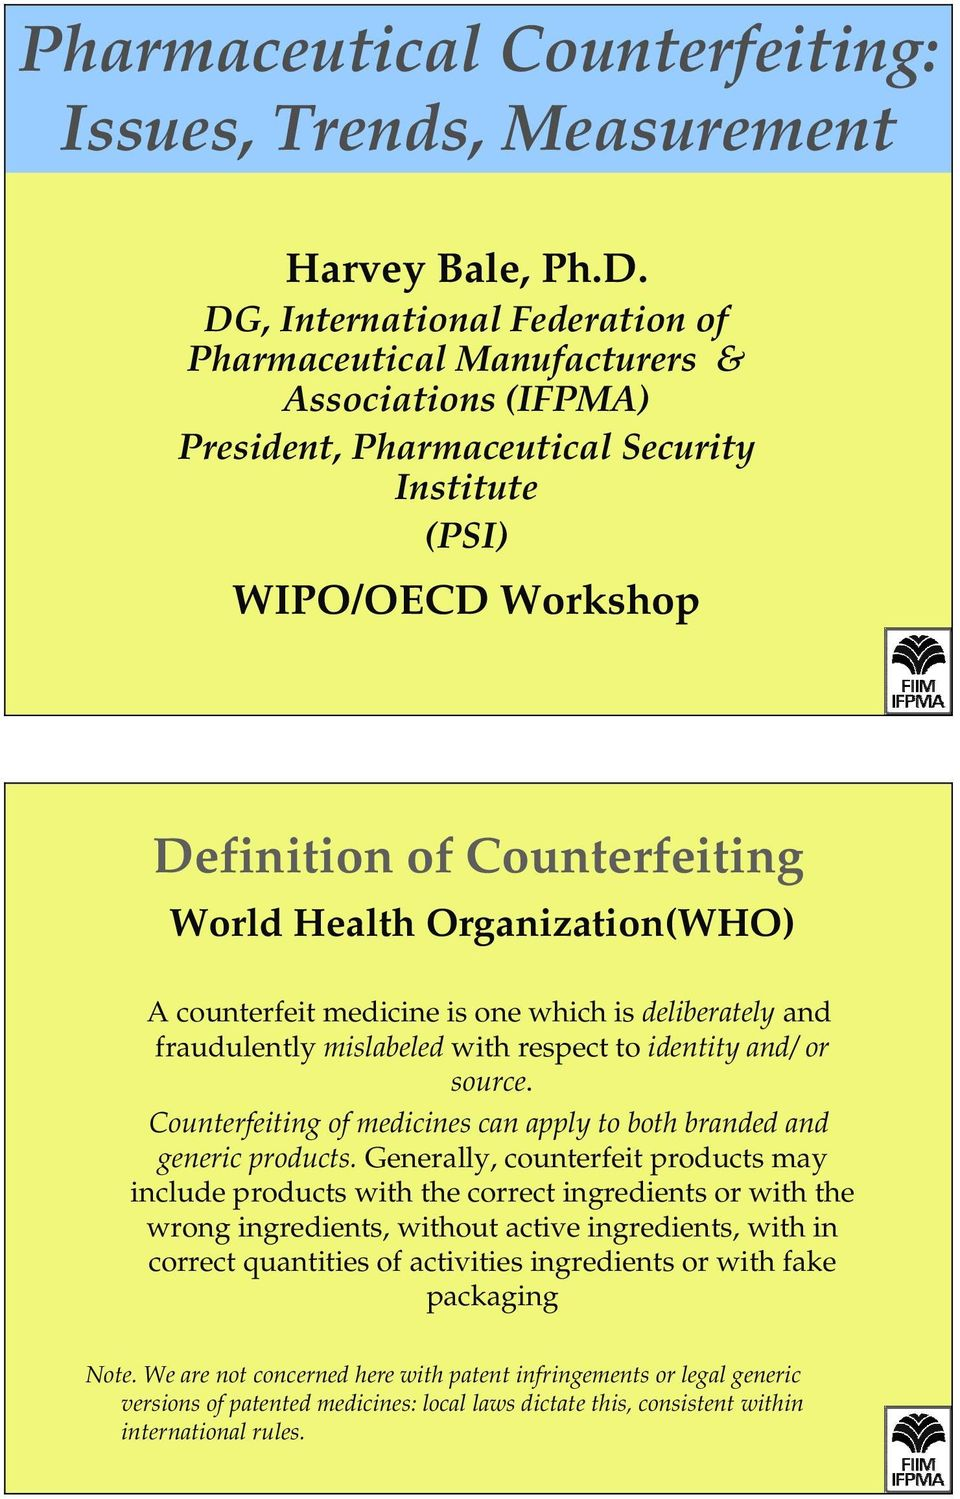 Organization(WHO) A counterfeit medicine is one which is deliberately and fraudulently mislabeled with respect to identity and/ or source.